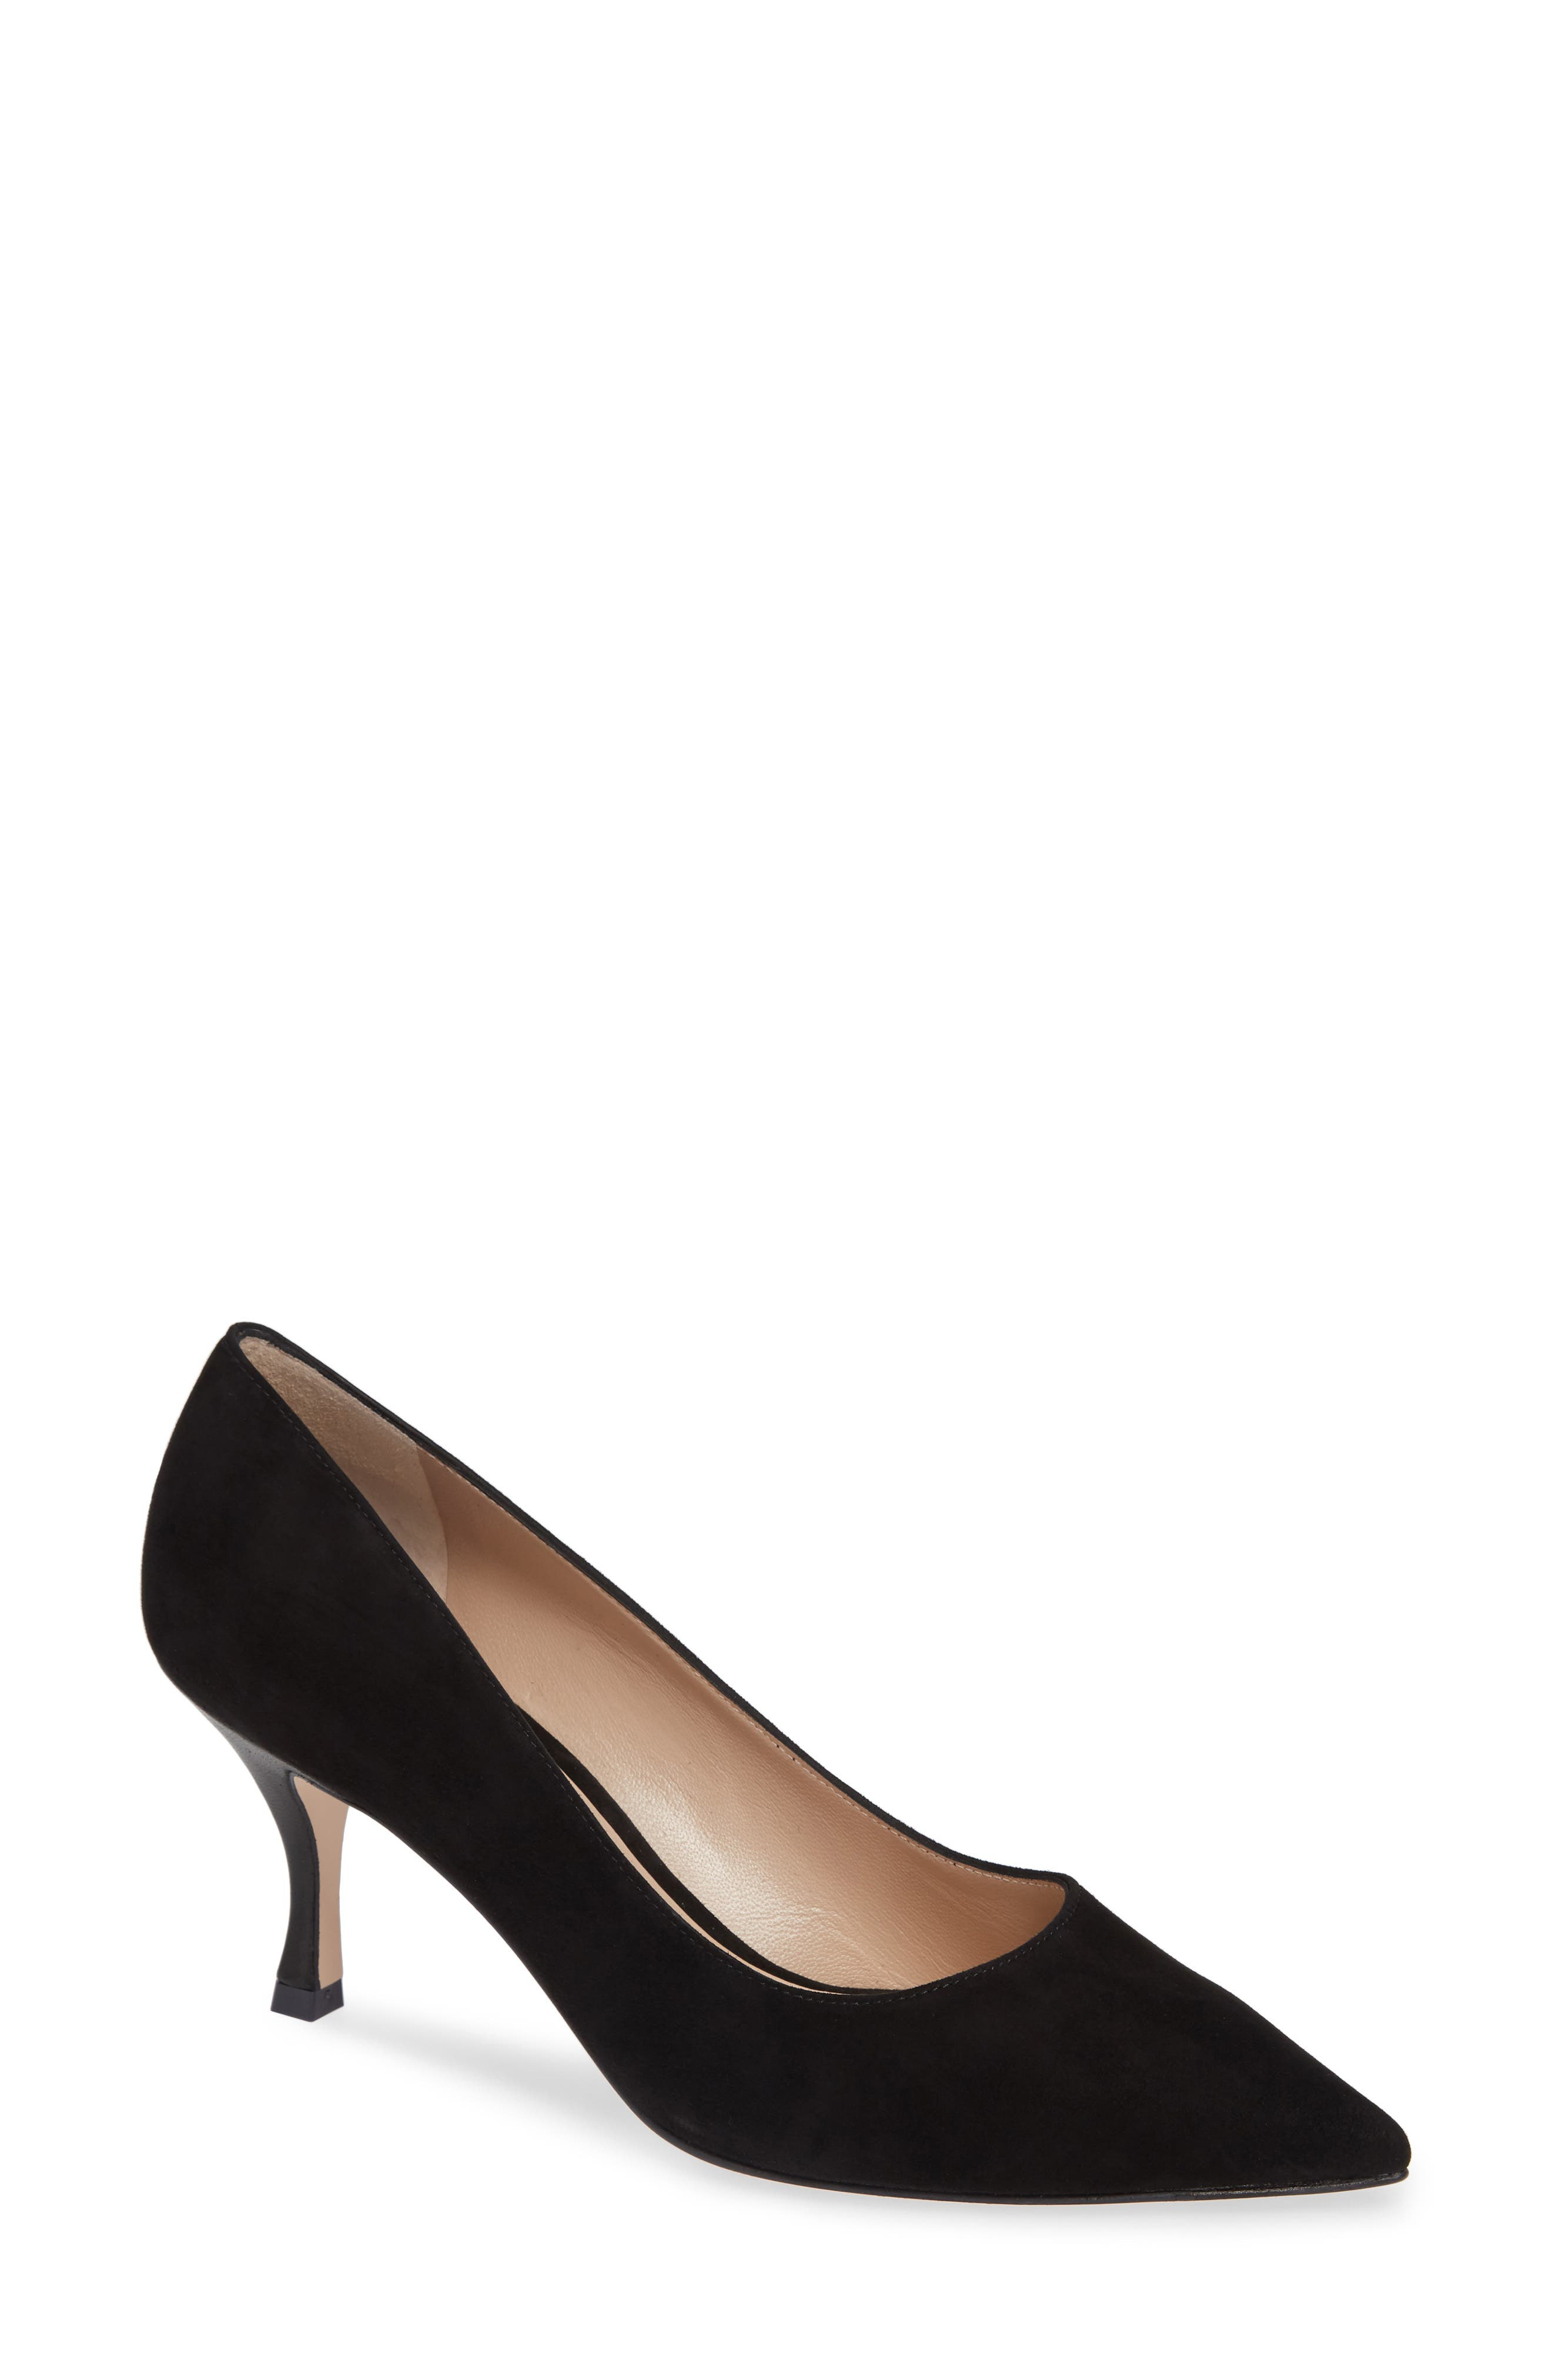 Tippi 70 Pointy Toe Pump,                         Main,                         color, PITCH BLACK